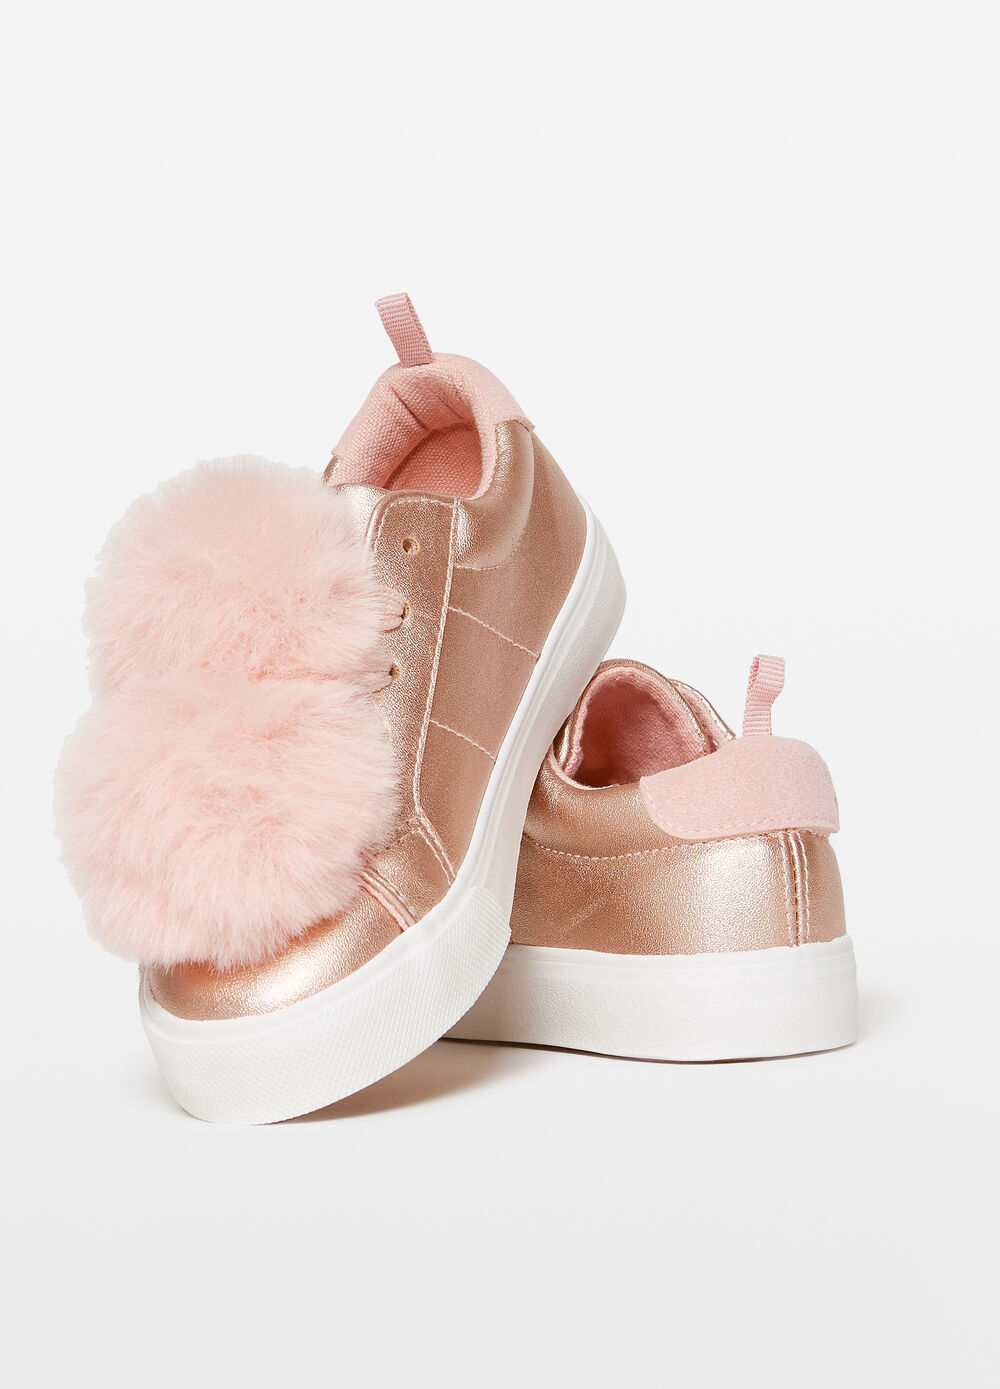 Shiny sneakers with pompoms and insert